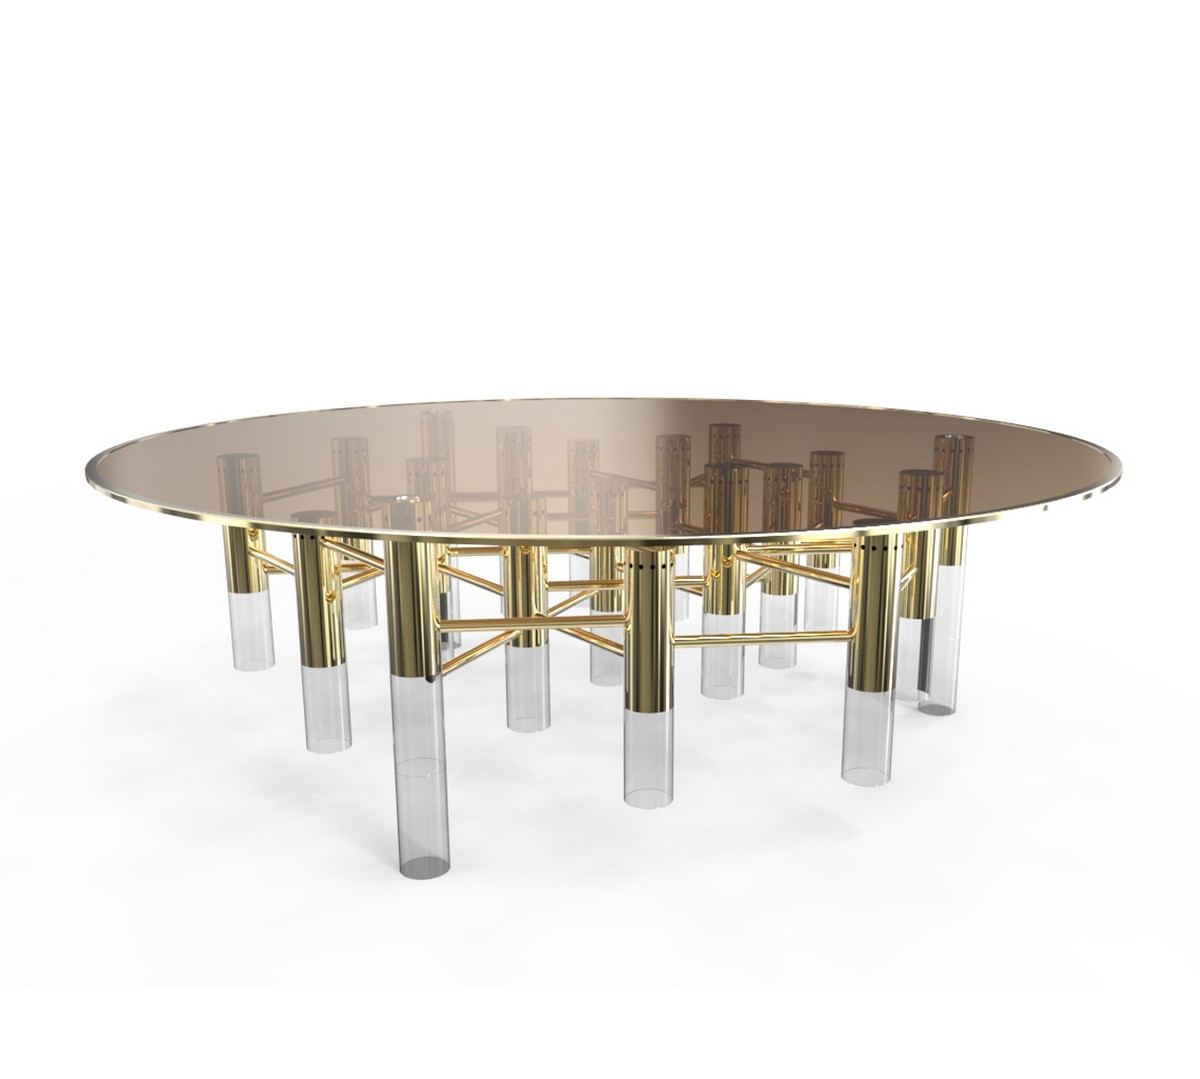 Top Vintage Style Coffee Tables vintage style coffee tables Top Vintage Style Coffee Tables konstantin2